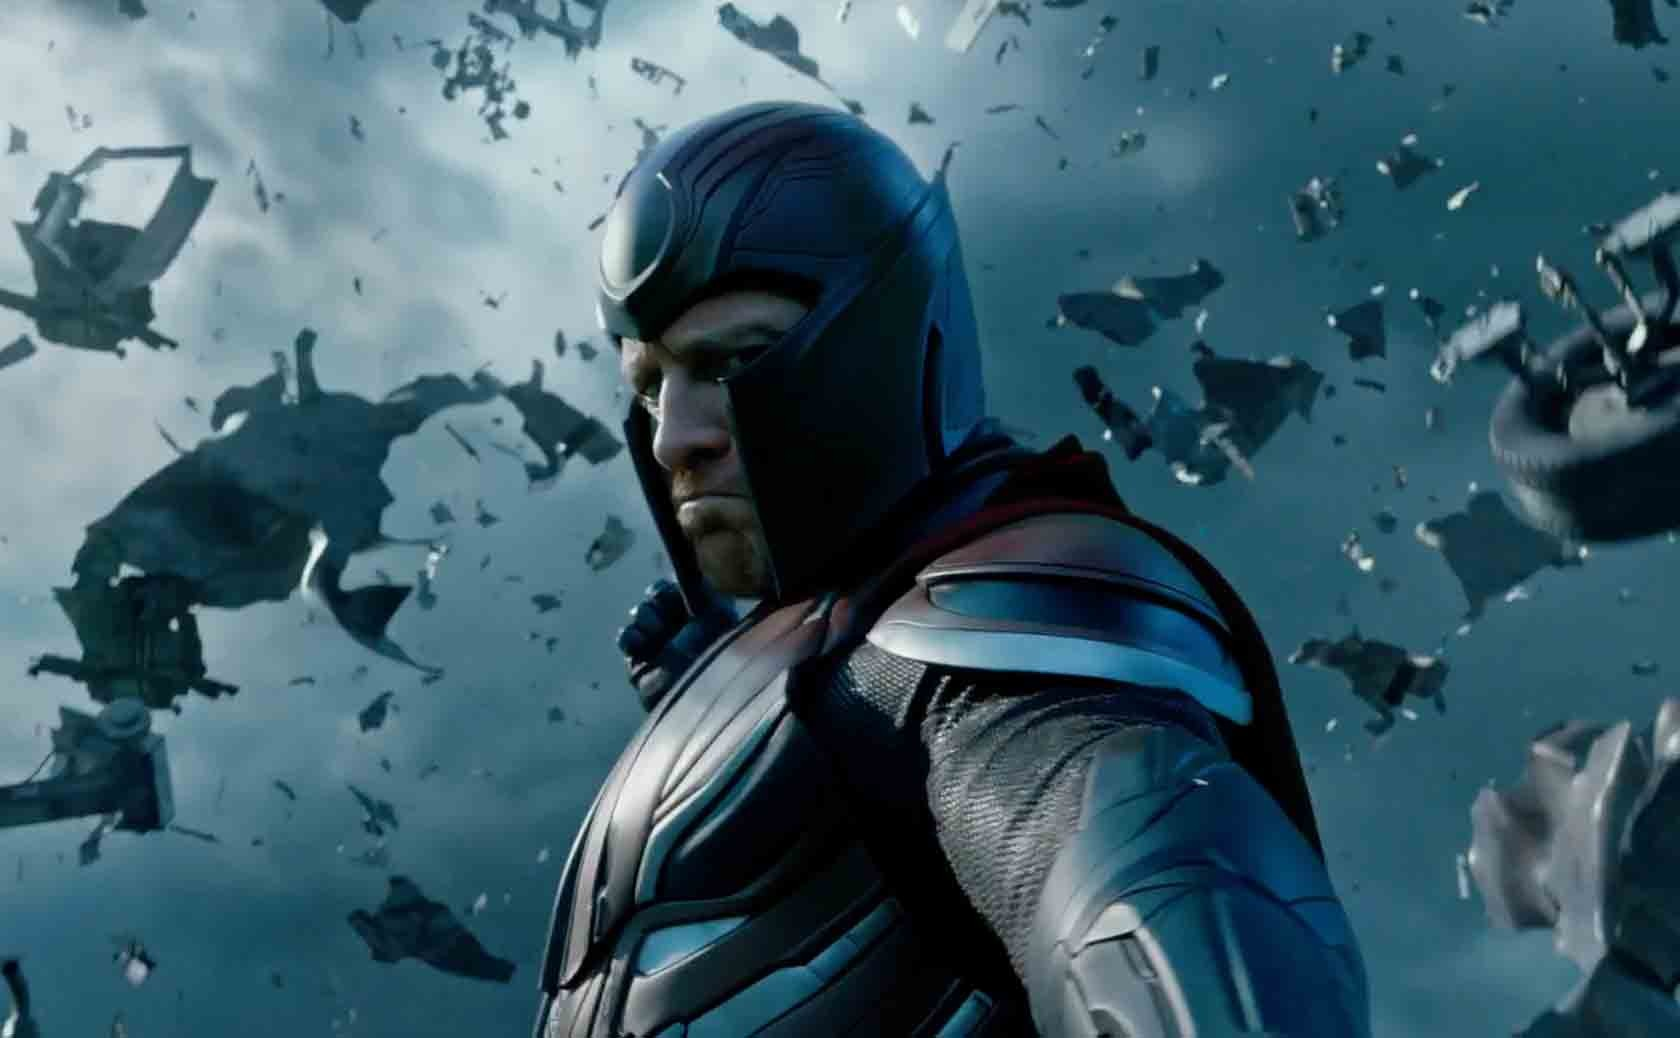 X-Men: Apocalypse backgrounds